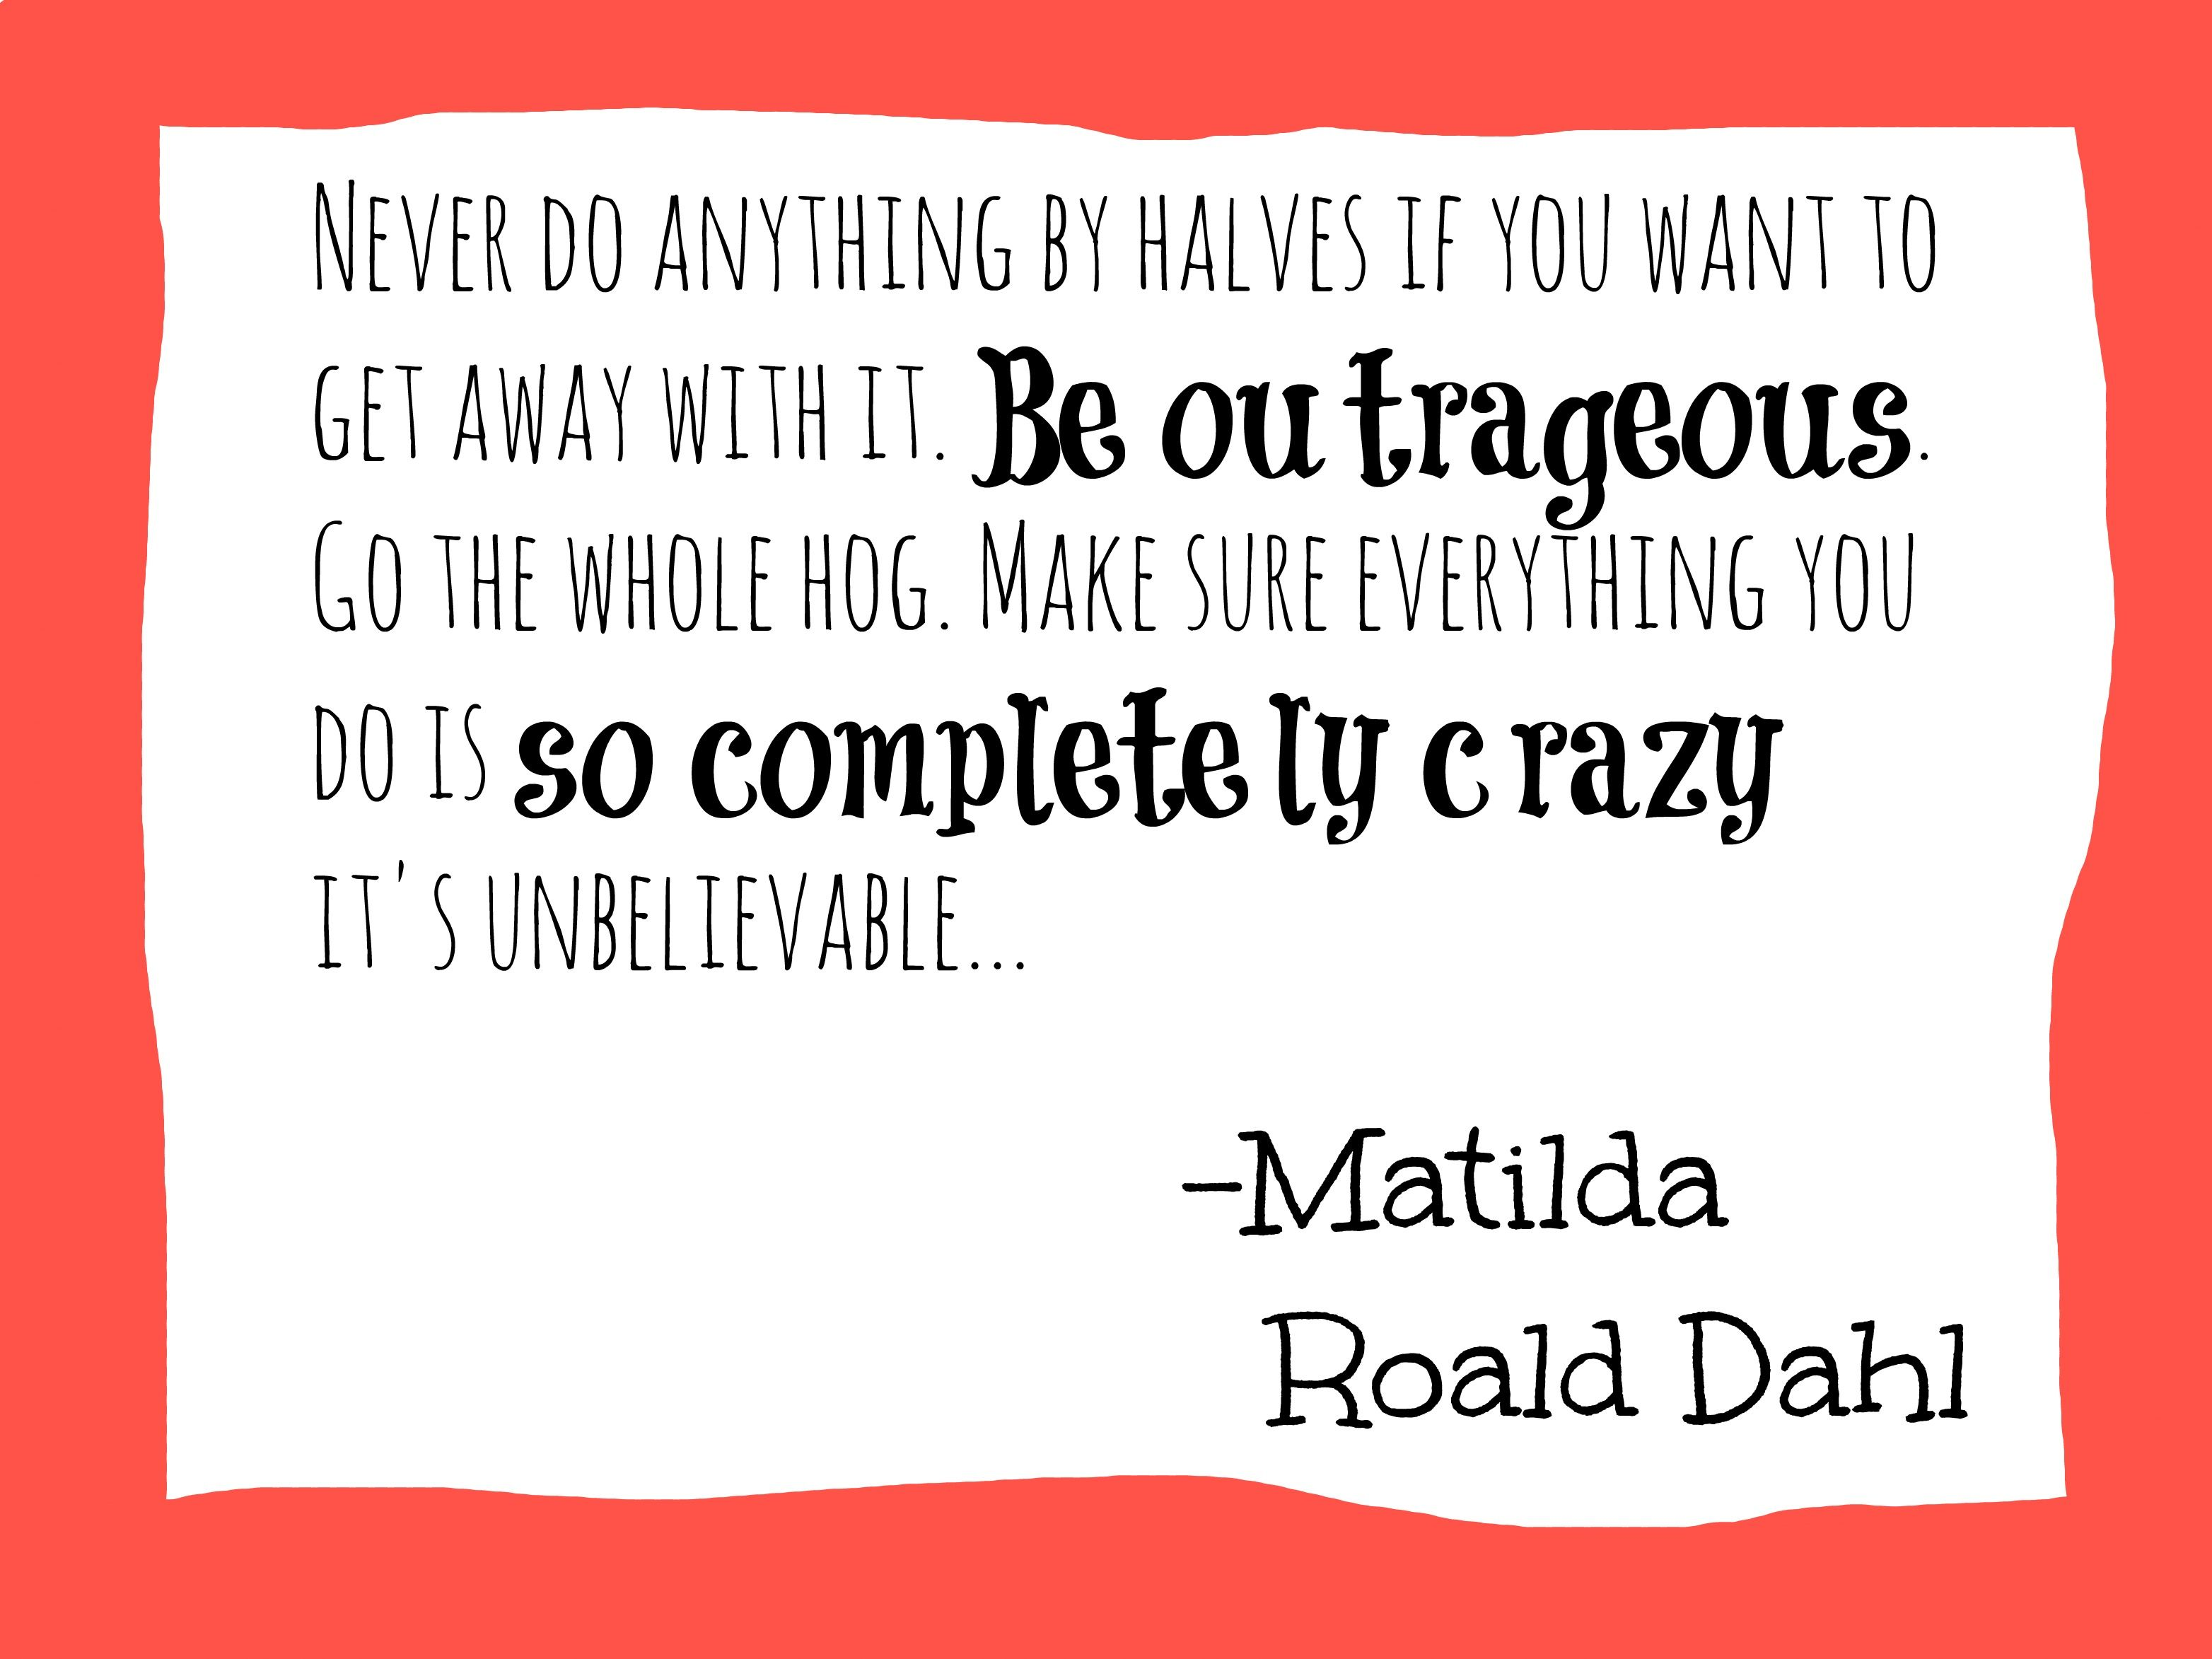 Roald Dahl Quotes: Matilda By Roald Dahl - Be Outrageous Quote